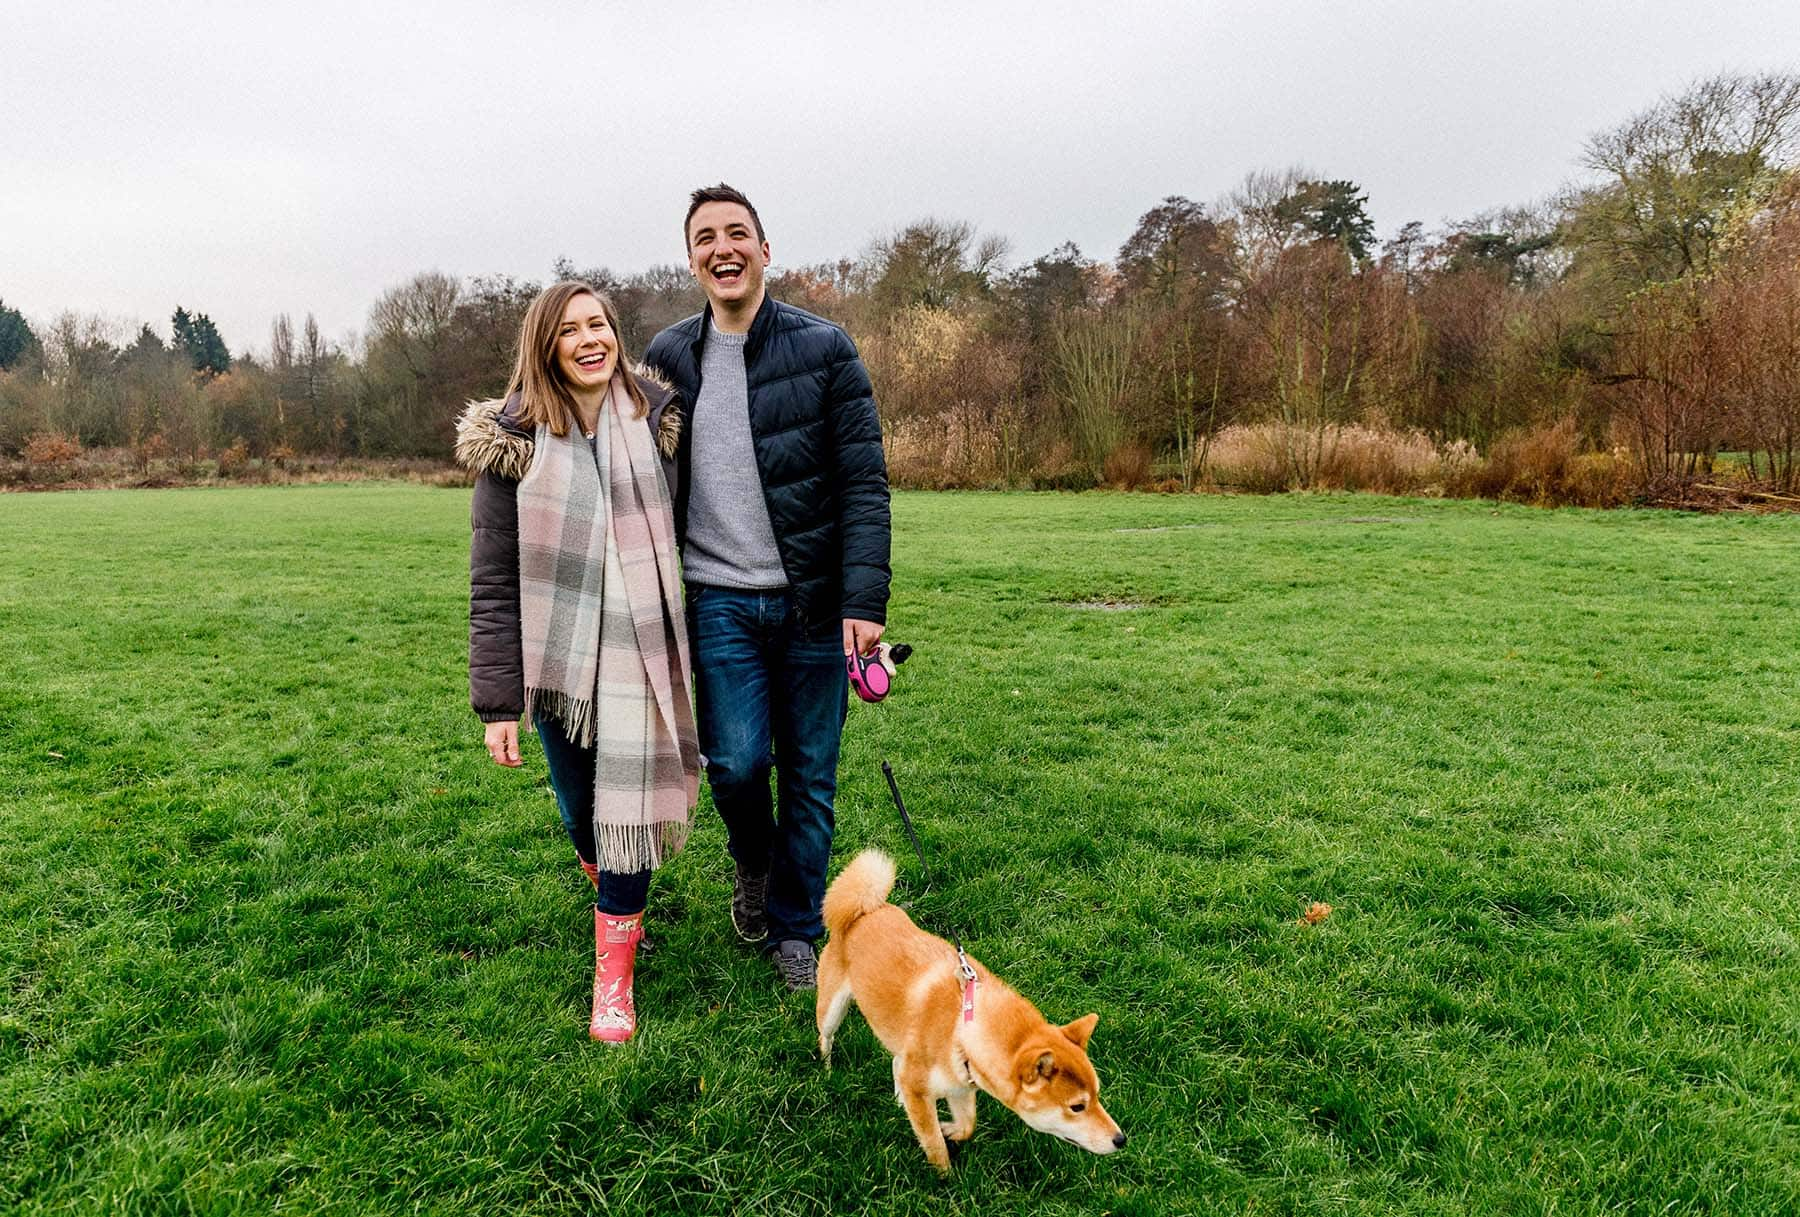 Emilia and Luke's Engagement Shoot at Elmdon Nature Park with a beautiful pup!